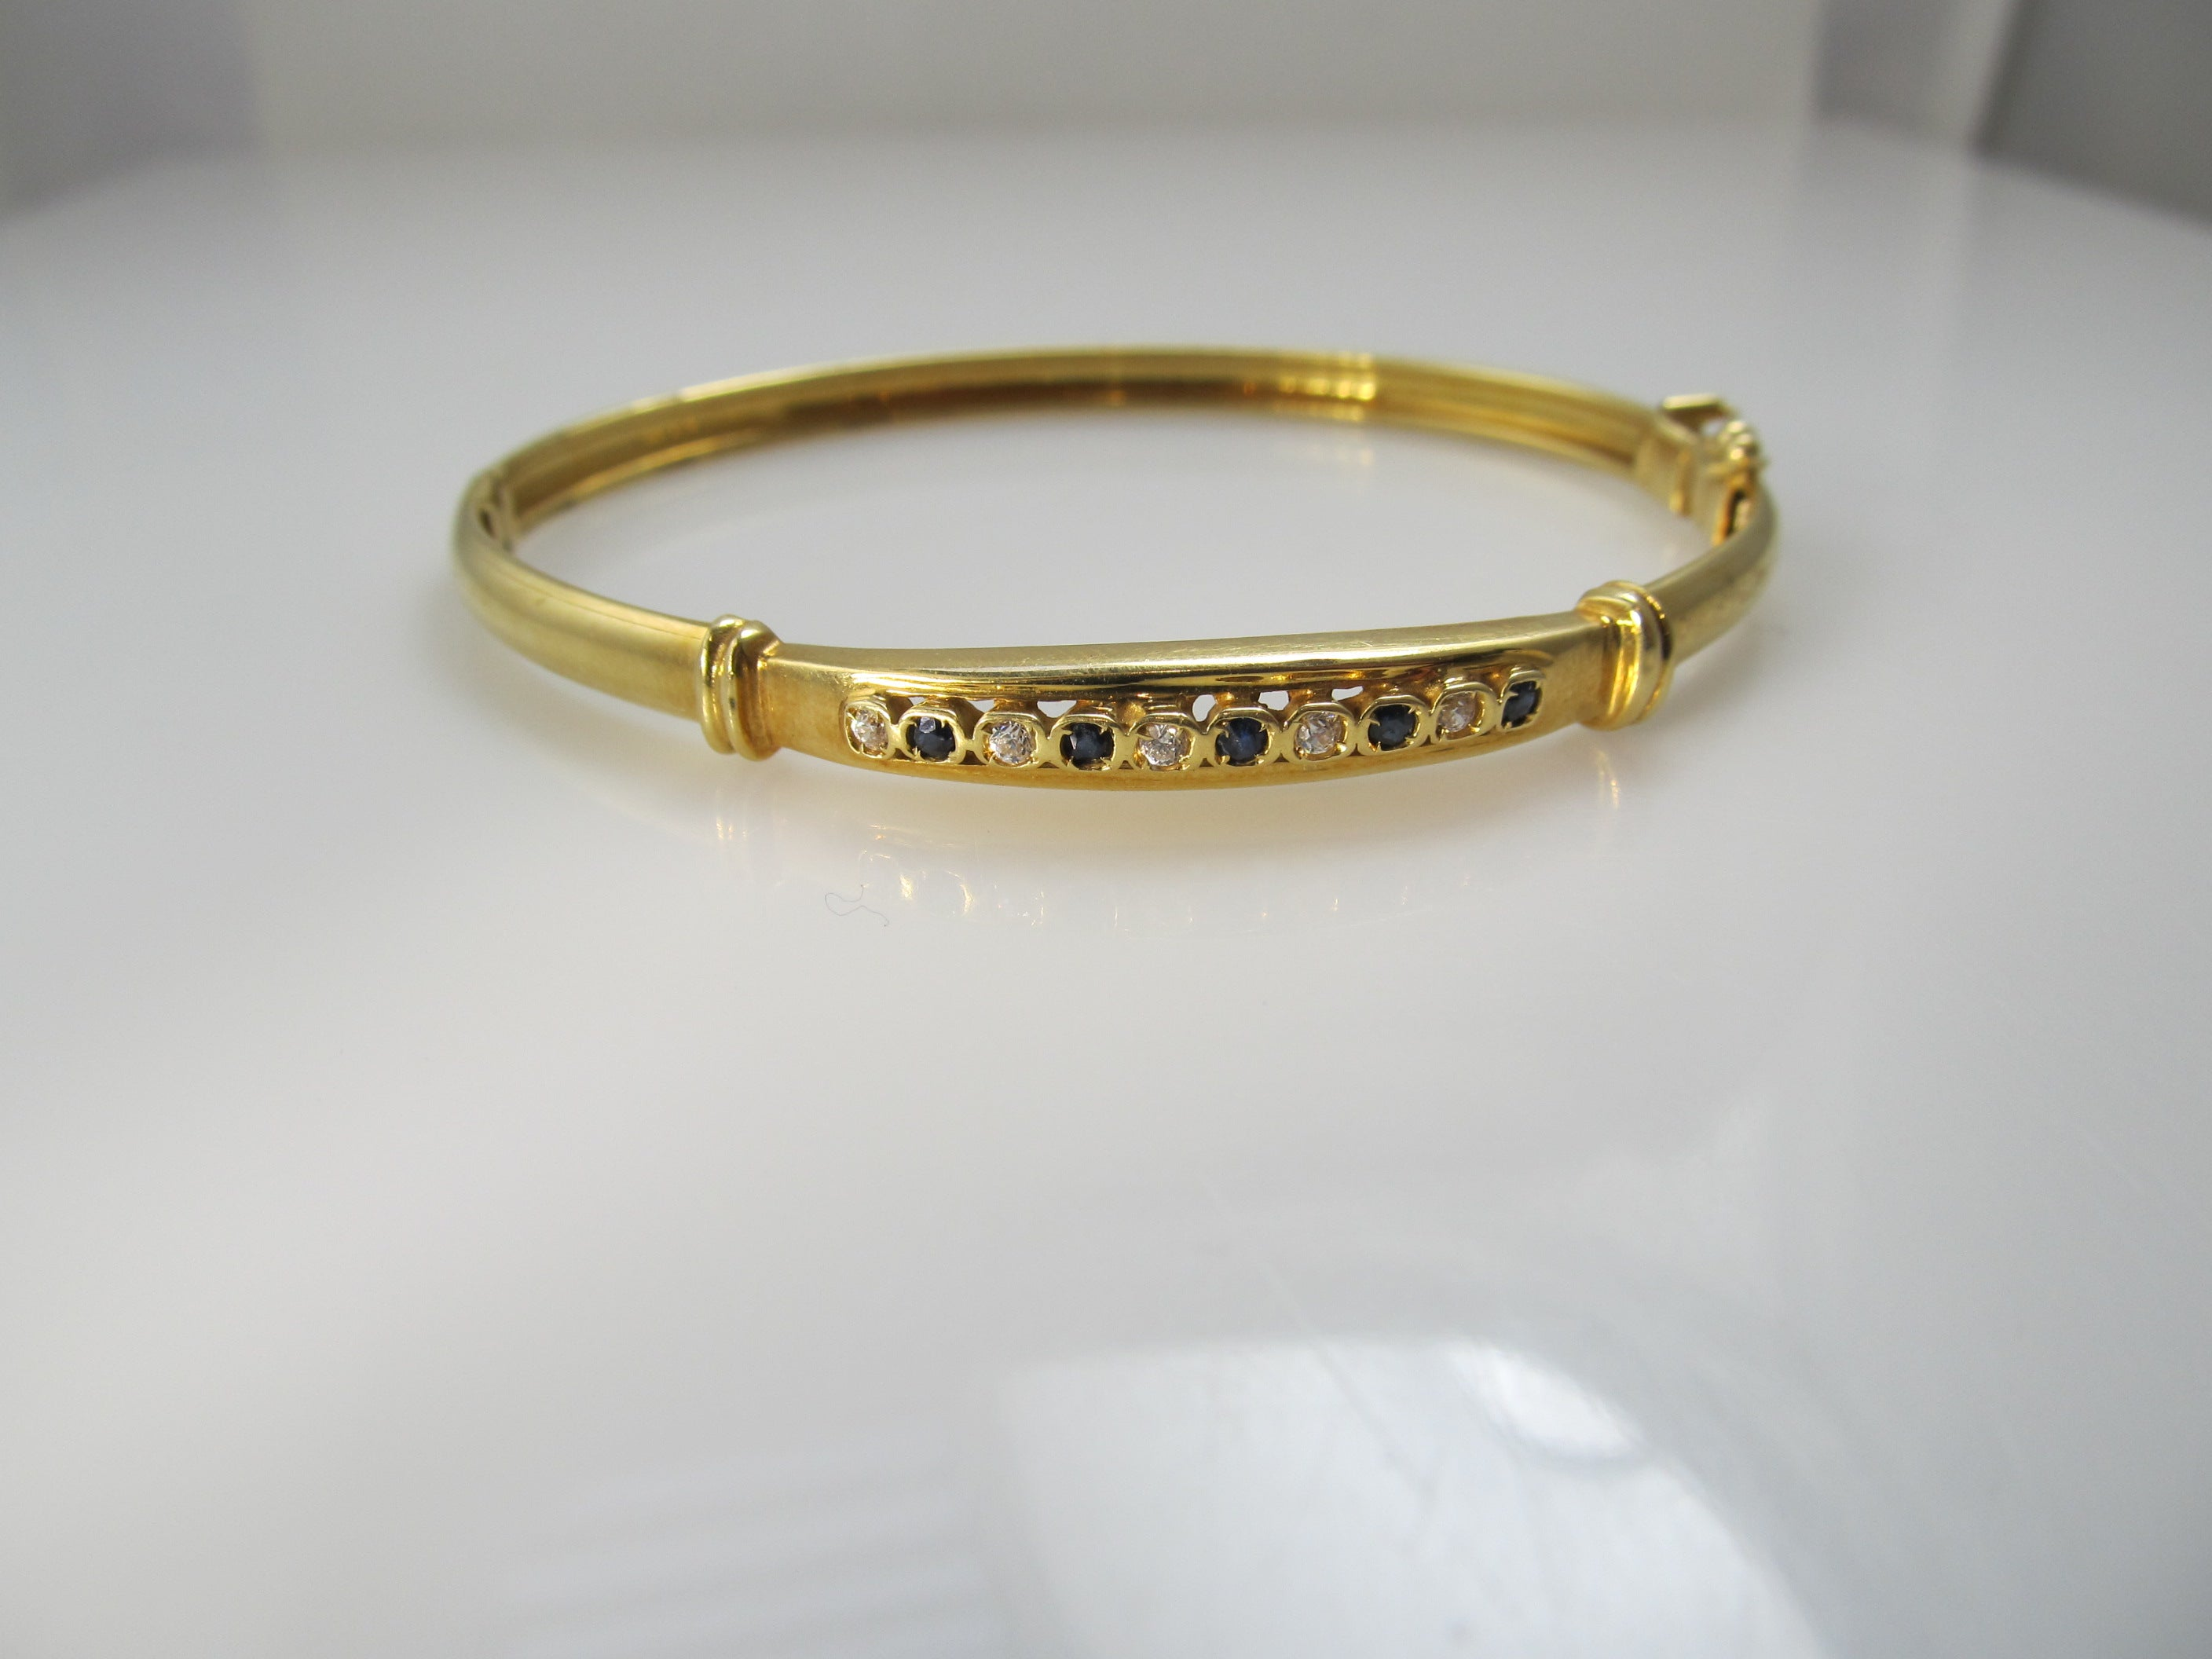 filidoro org cuff jewelry gold bracelet yellow bracelets id j bangles buccellati bangle at